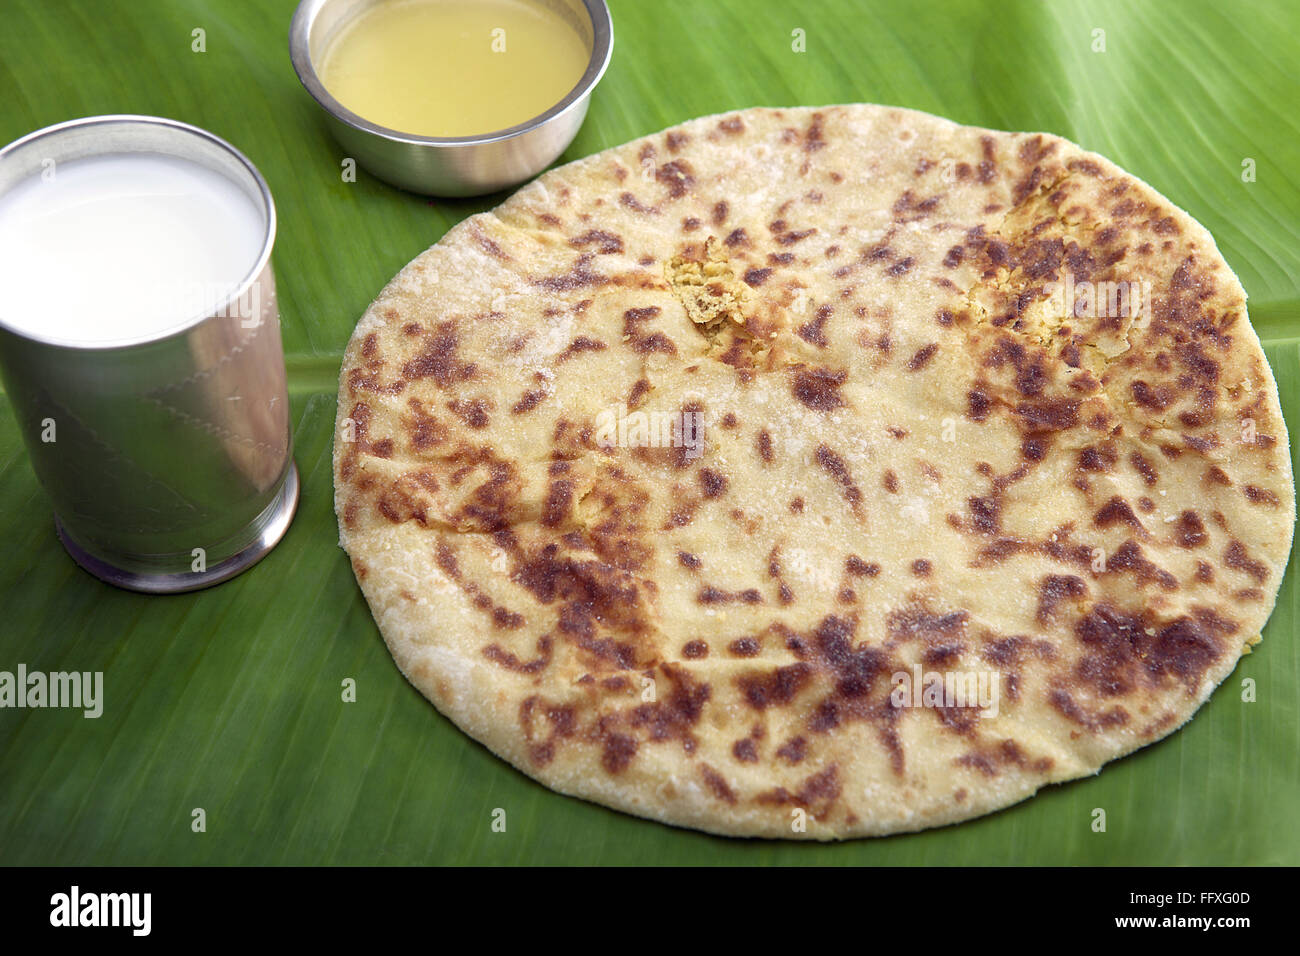 Puran Poli With Milk And Ghee On Banana Leaf